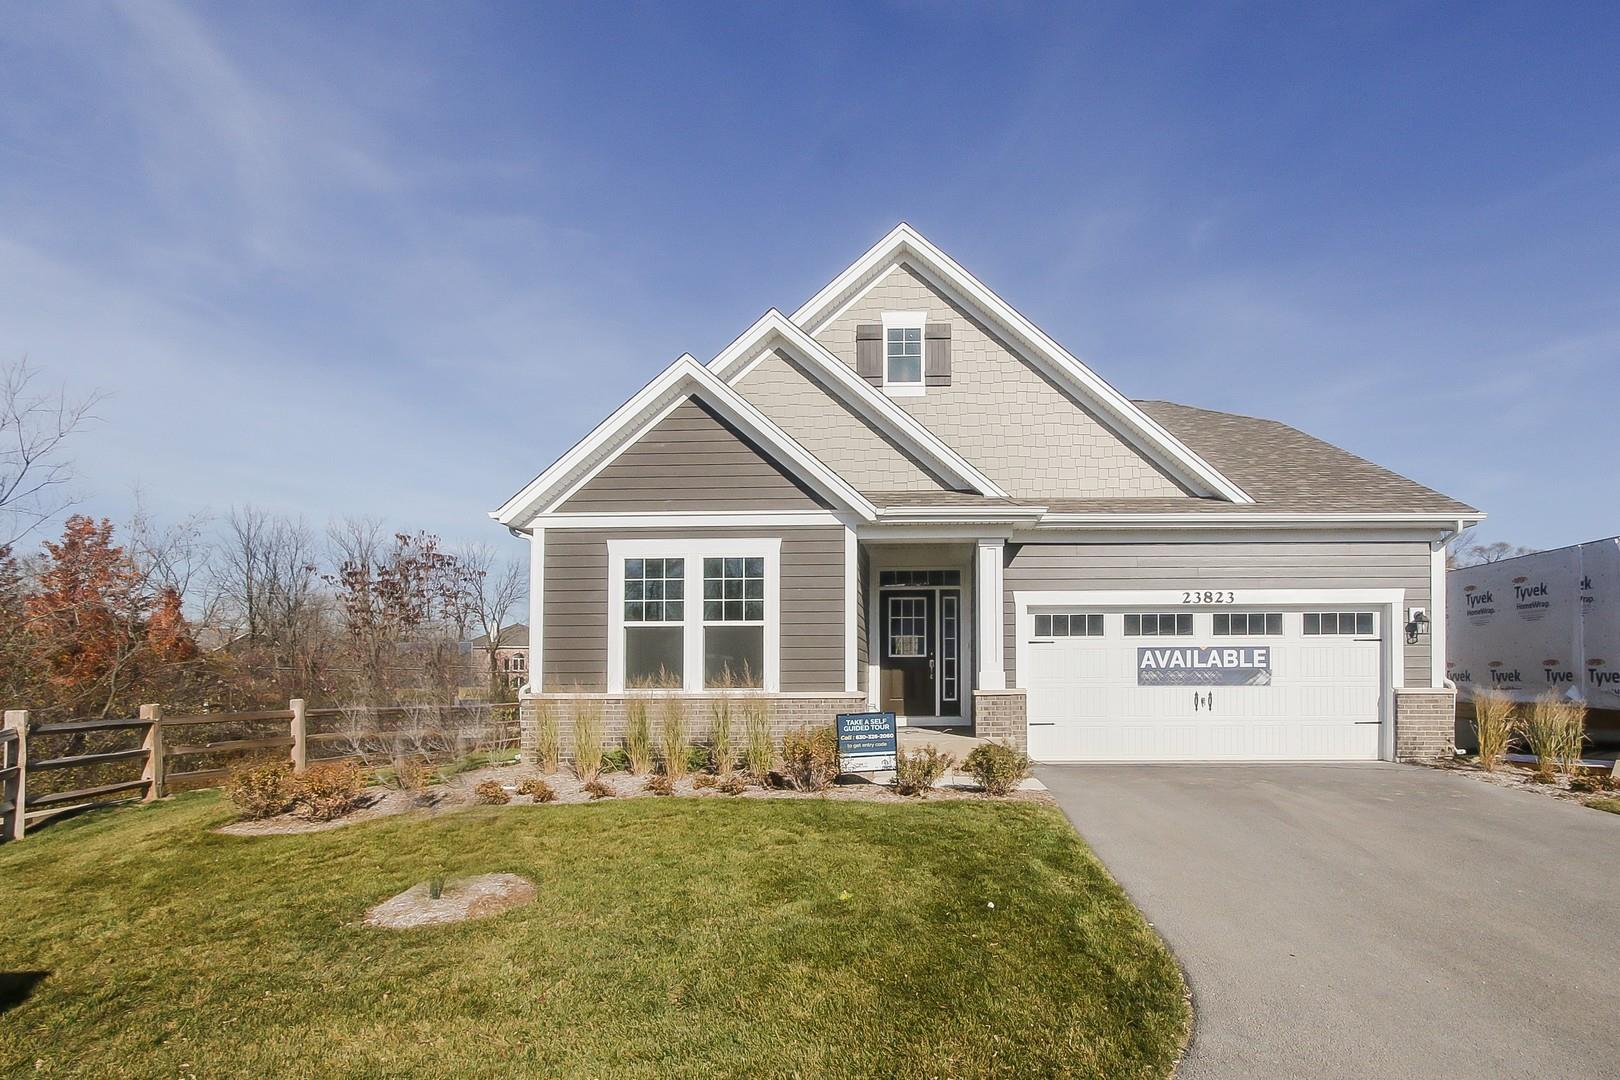 23823 N Muirfield Lot#9 Drive, Kildeer, IL 60047 - #: 10951858